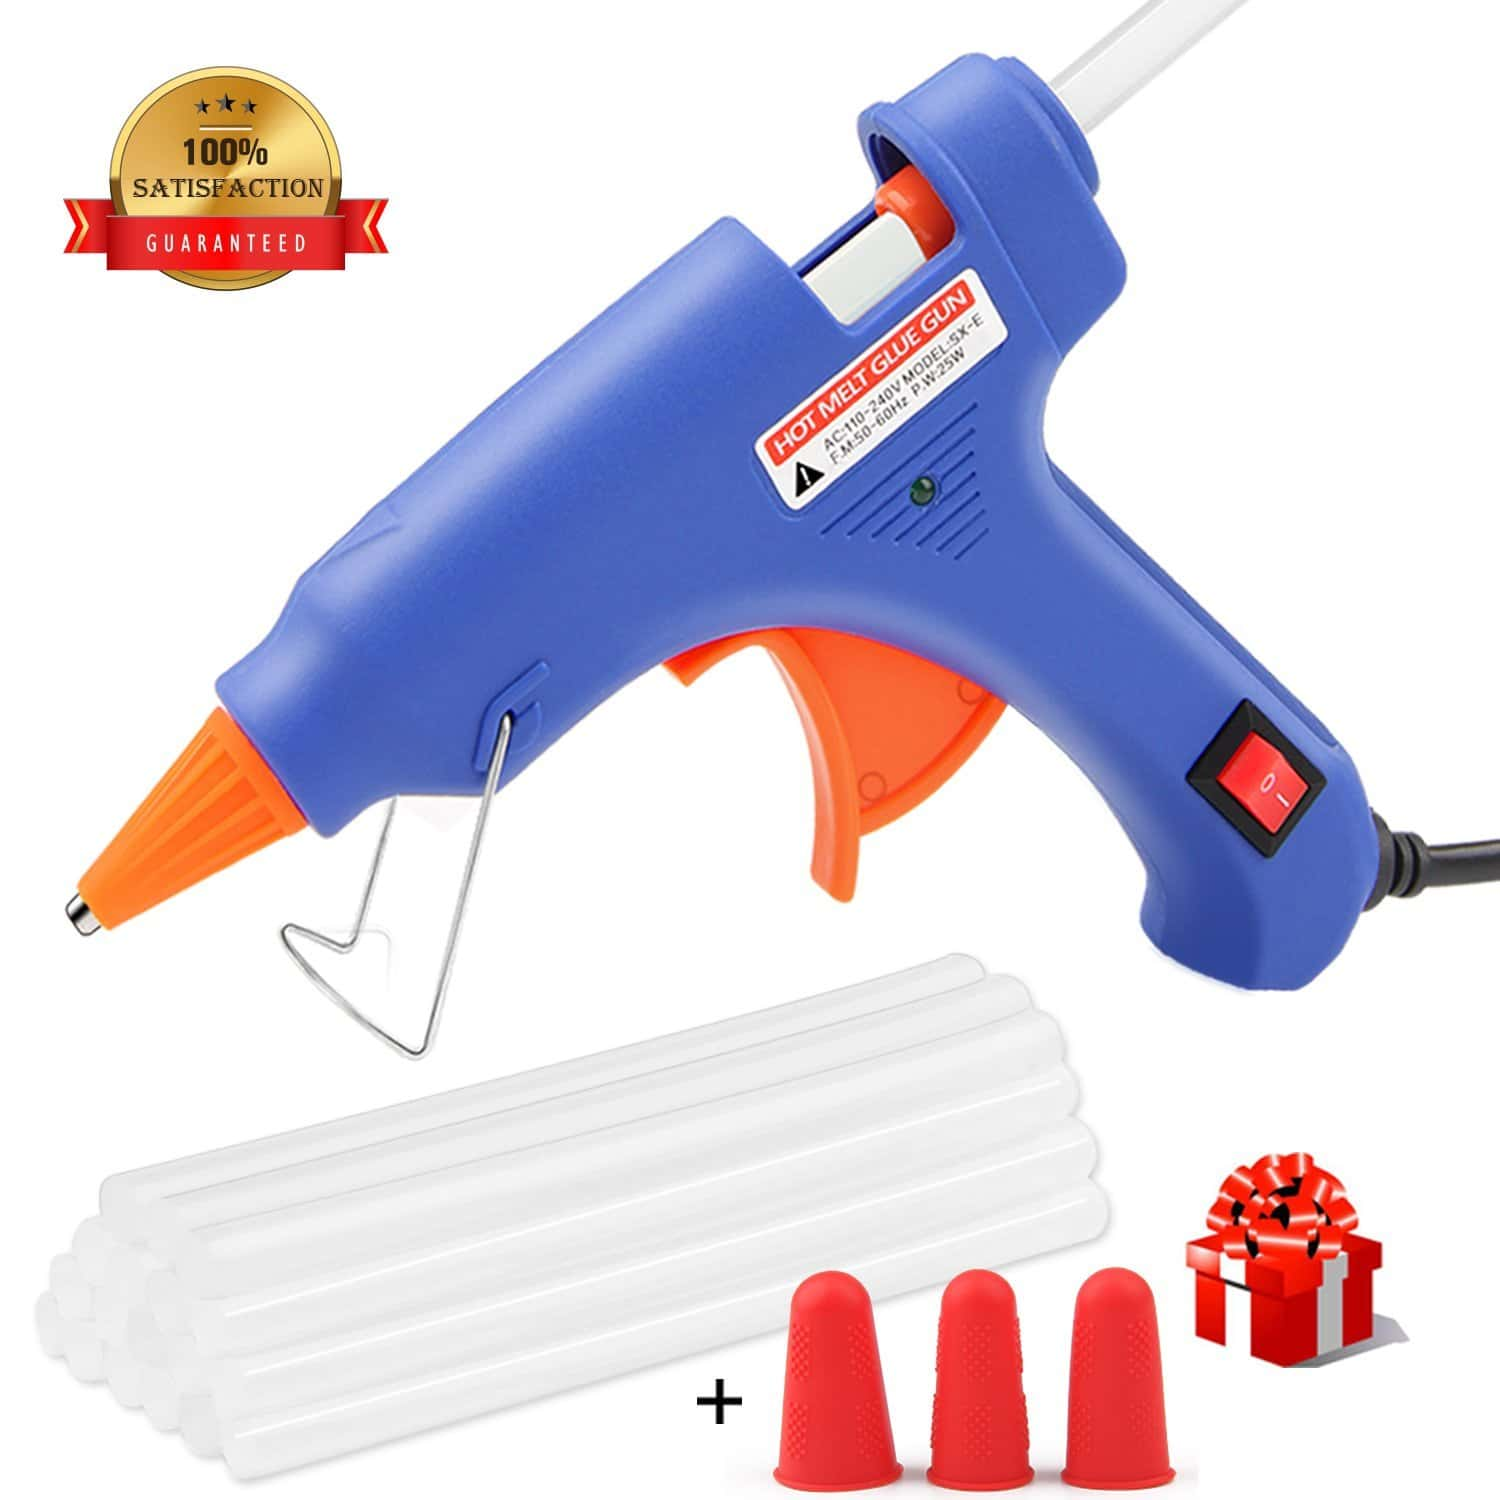 Hot Glue Gun, WEIO Rapid Heating Technology Hot Glue Gun with 25pcs Glue Sticks